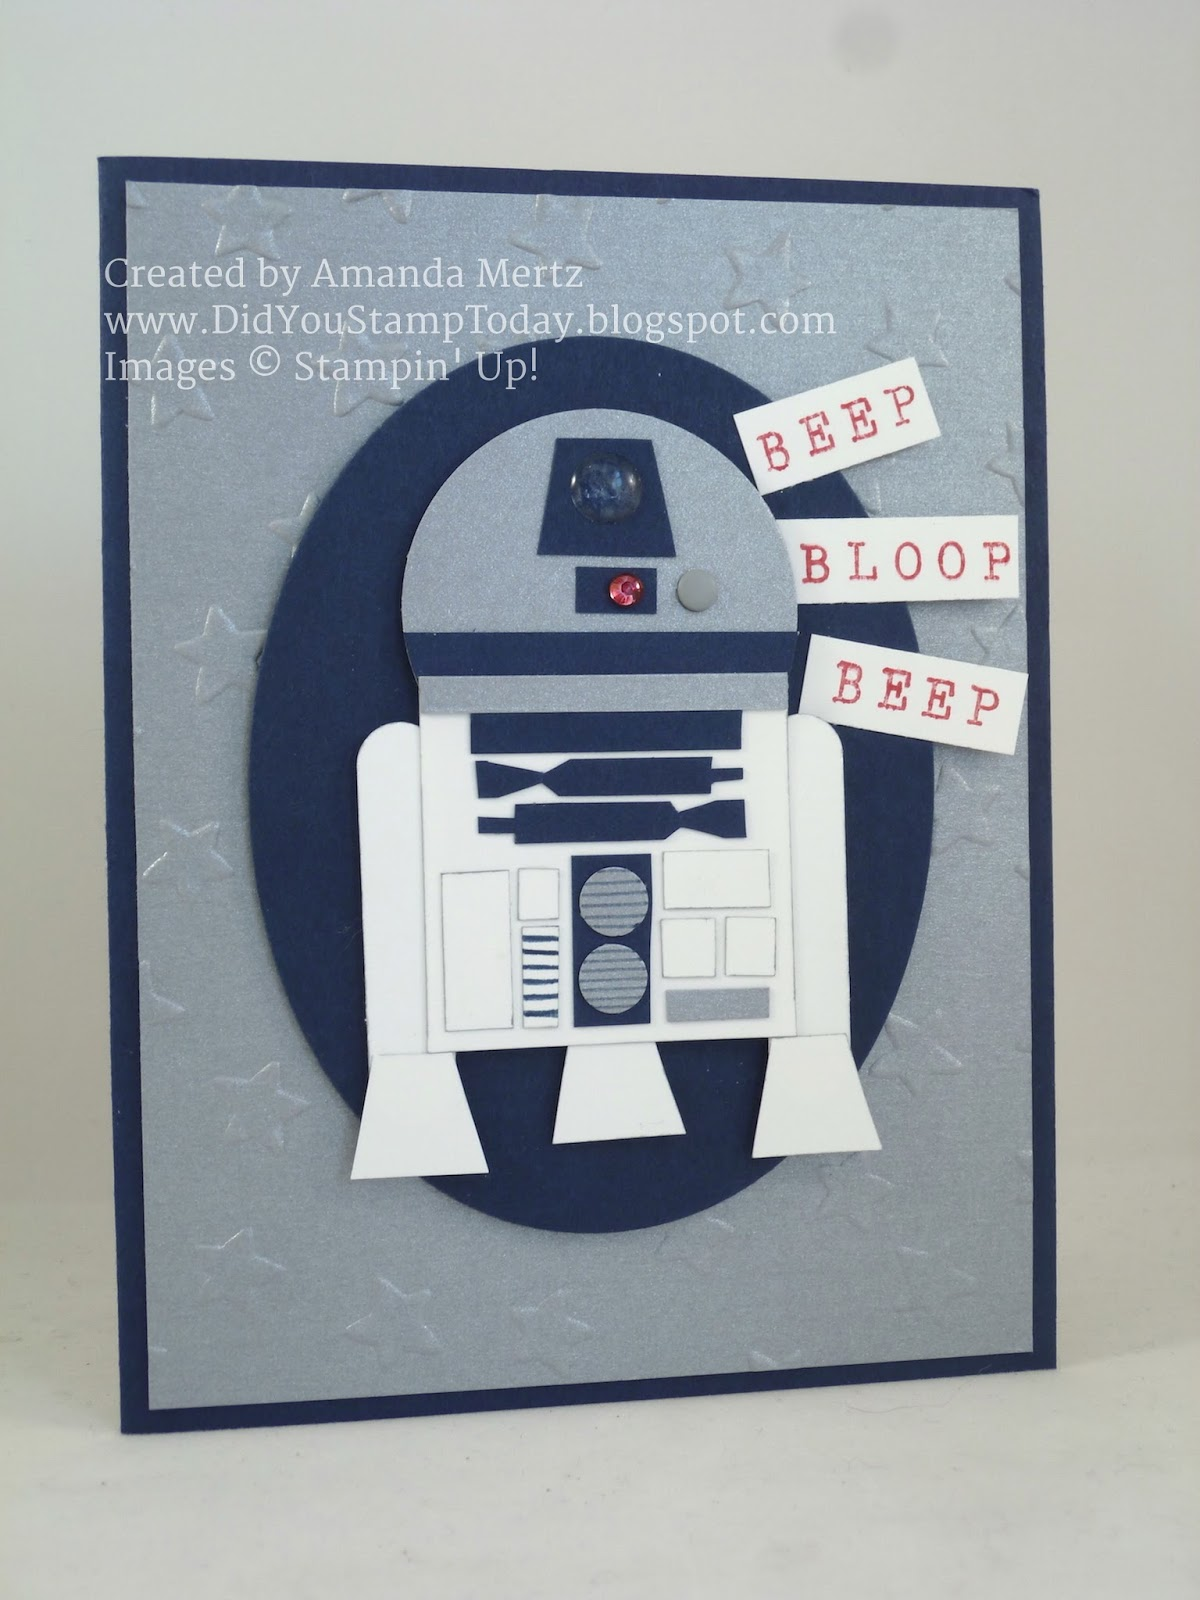 Did you stamp today star wars r2d2 birthday star wars r2d2 birthday bookmarktalkfo Choice Image